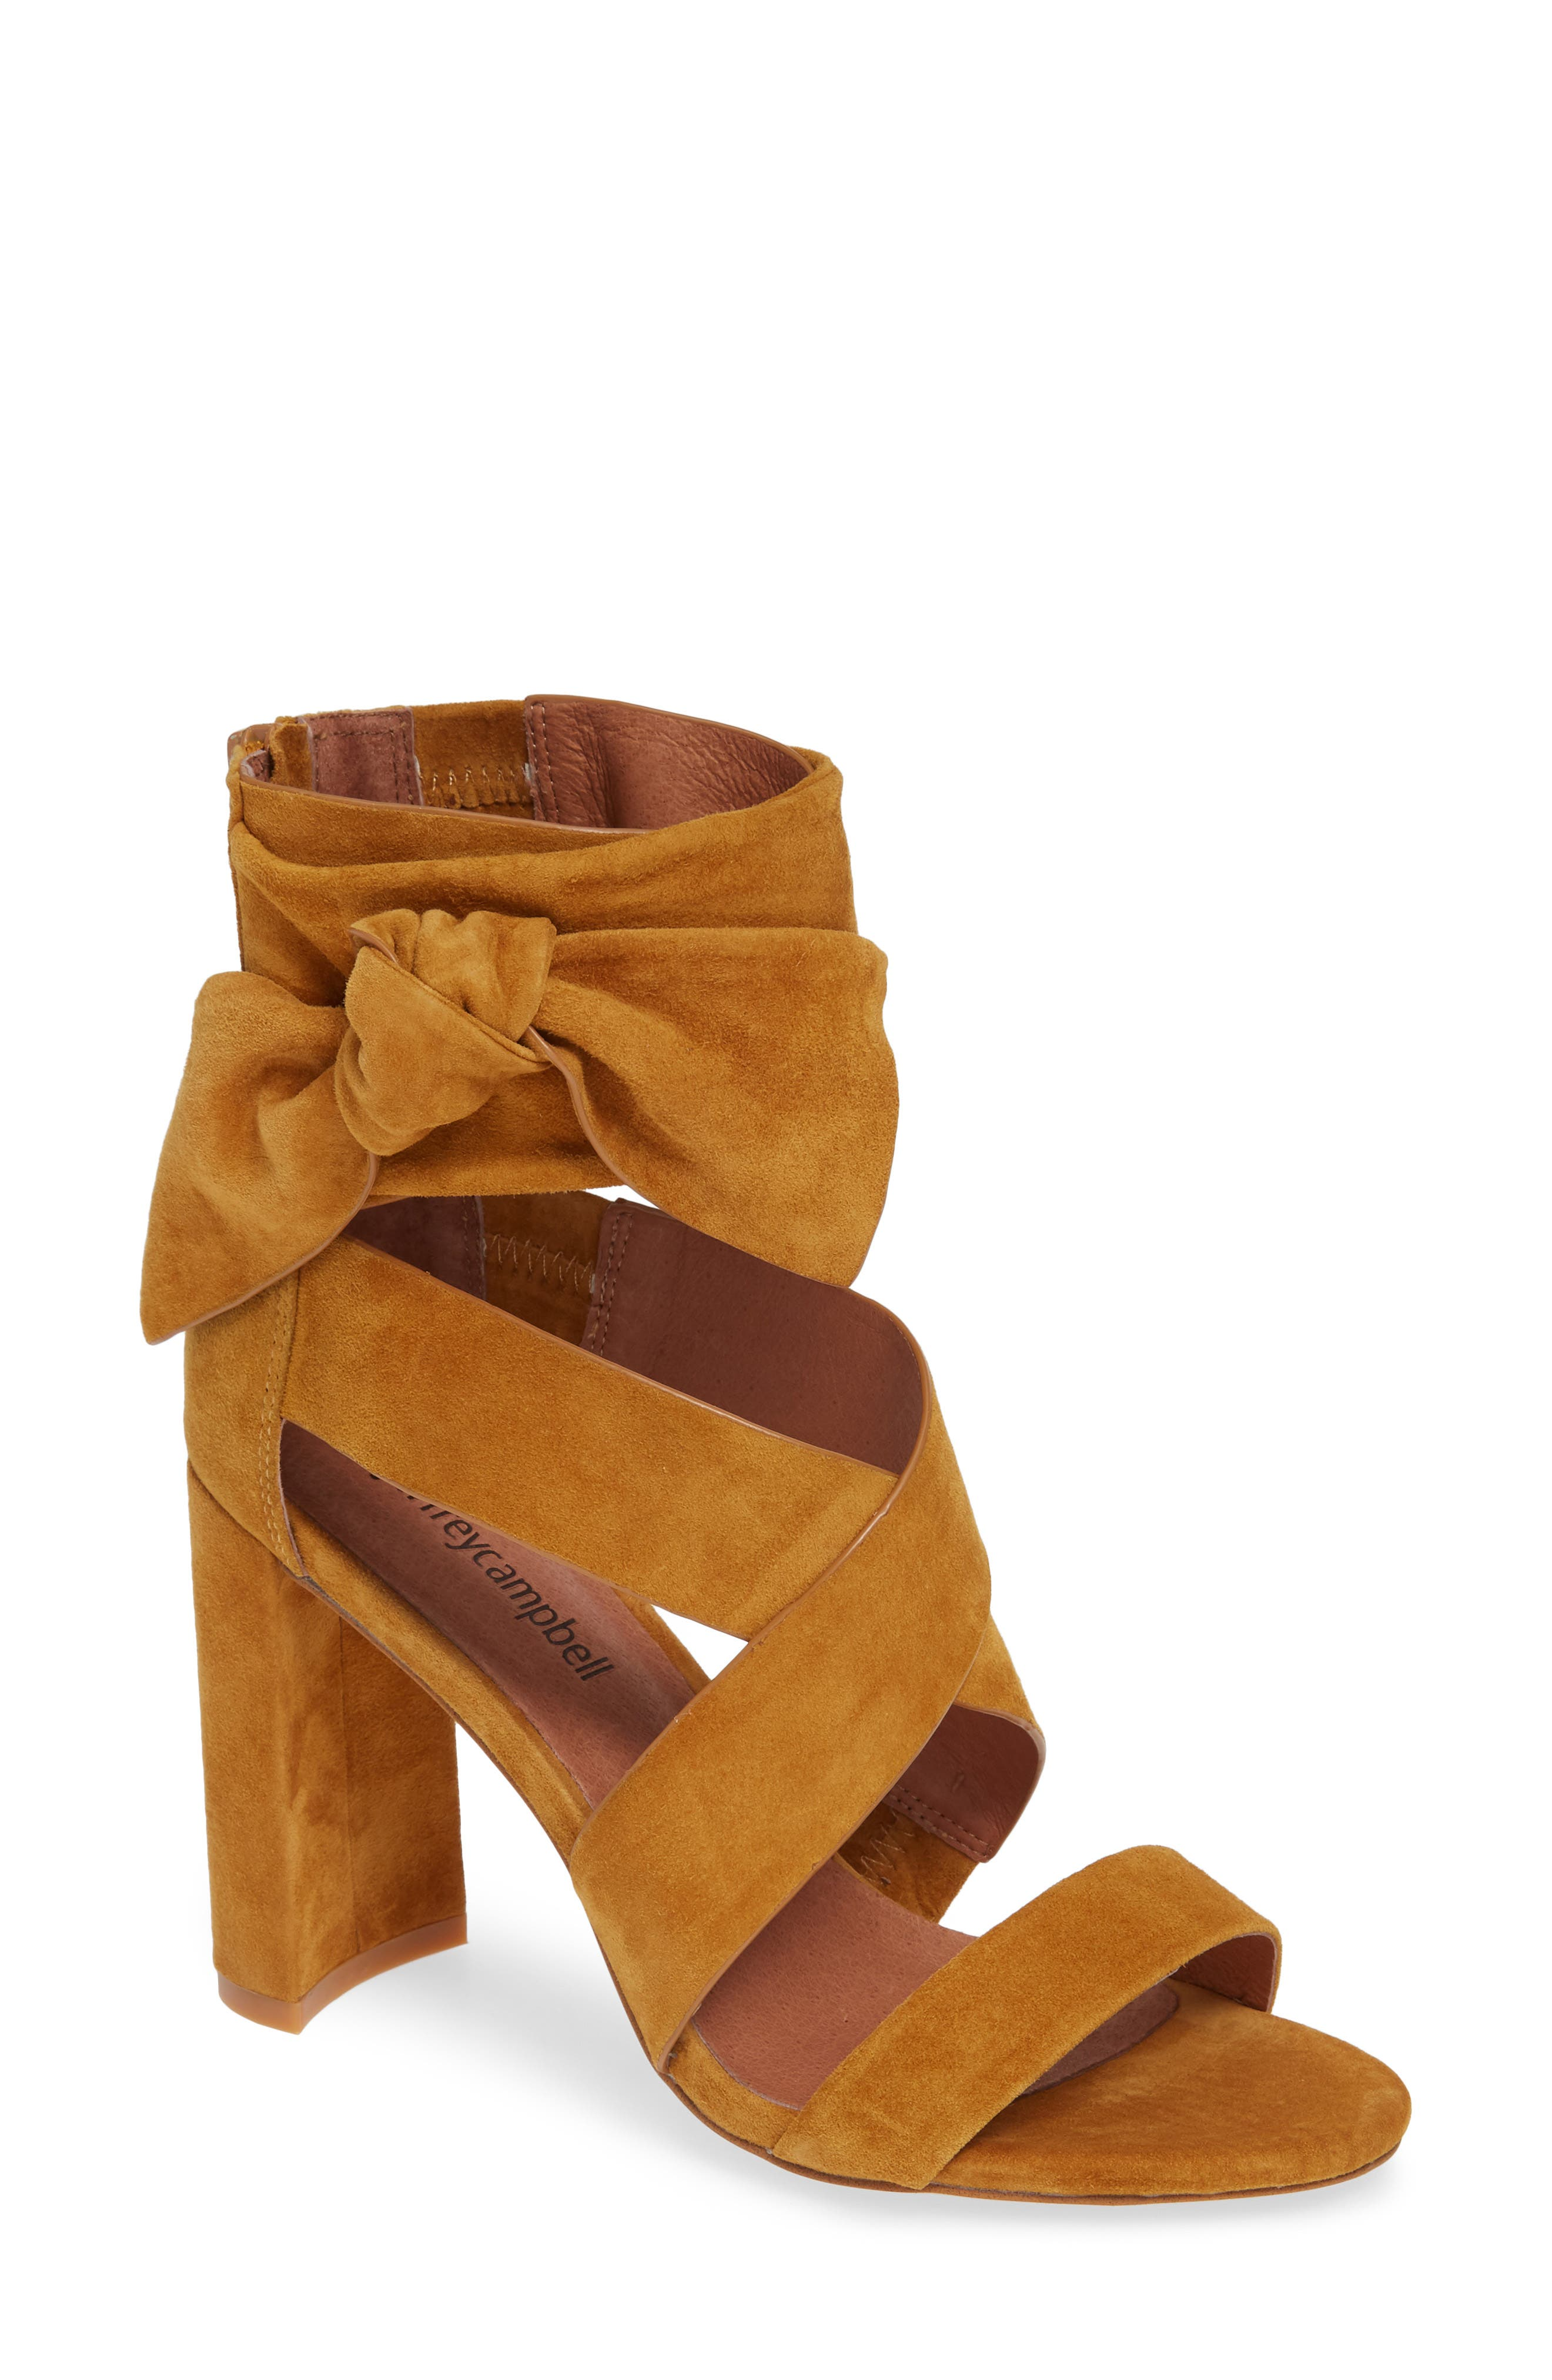 Despoina Sandal,                         Main,                         color, Mustard Suede Leather